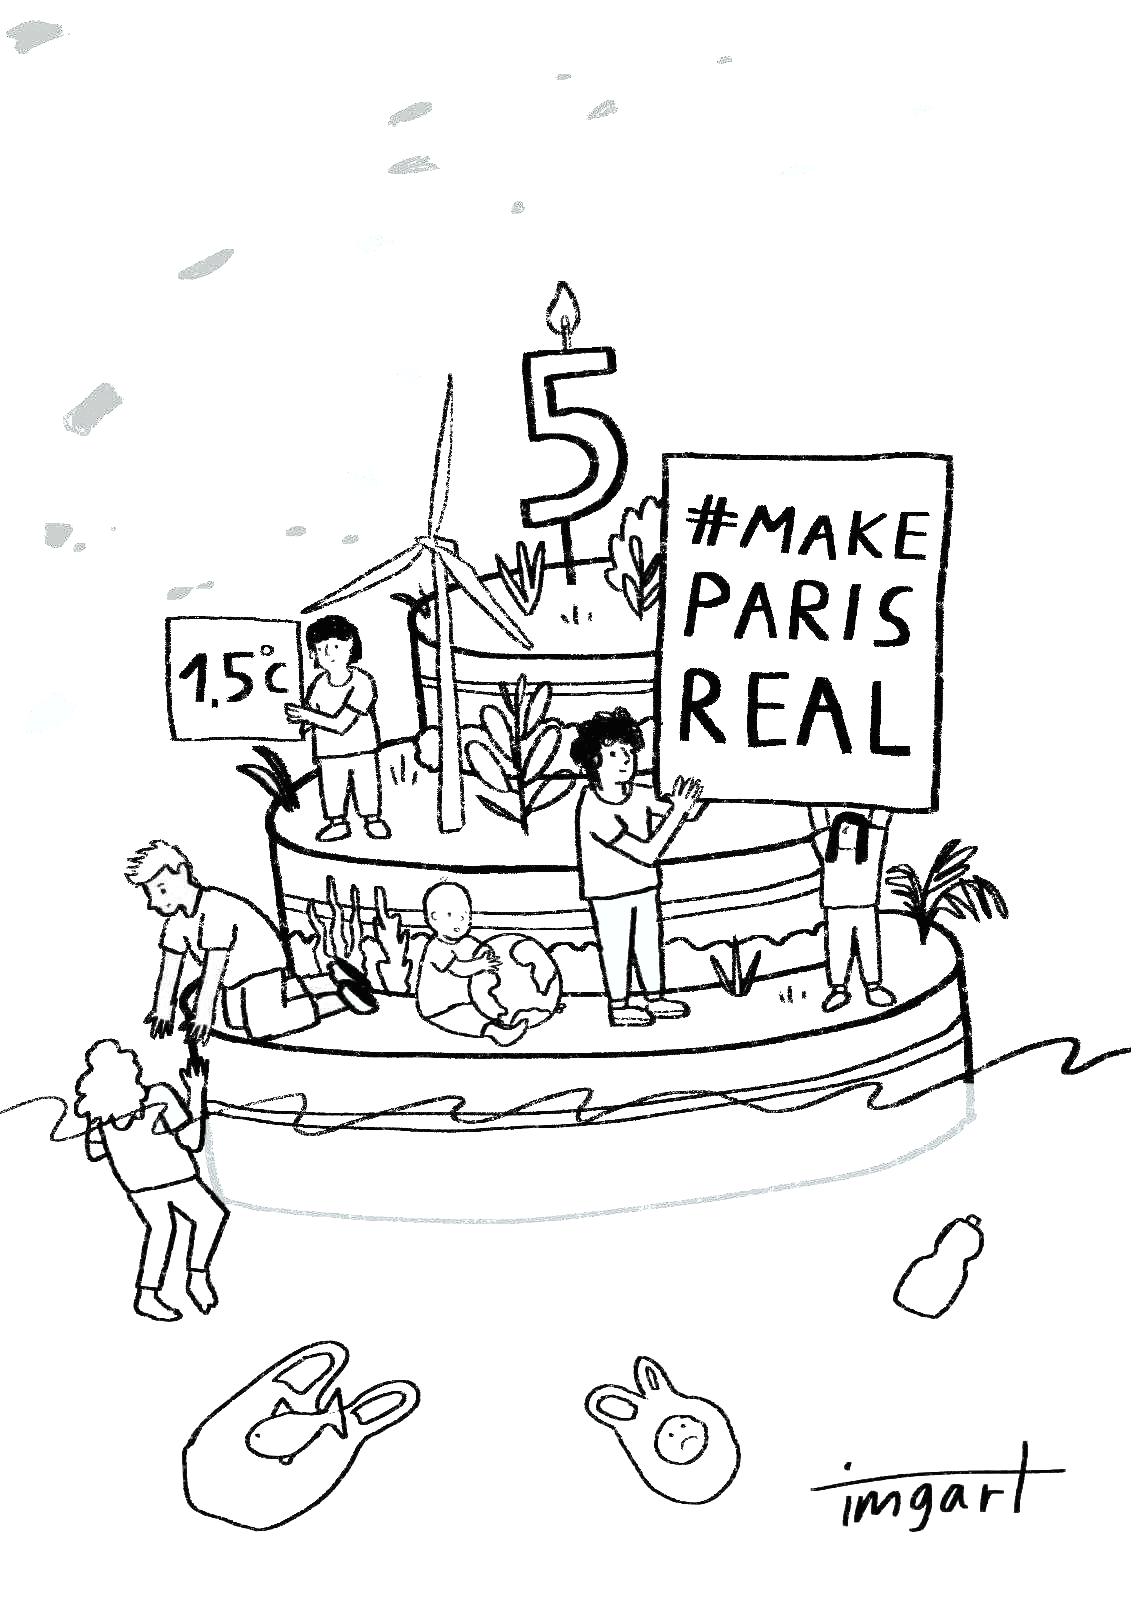 Make Paris Real - Colouring picture